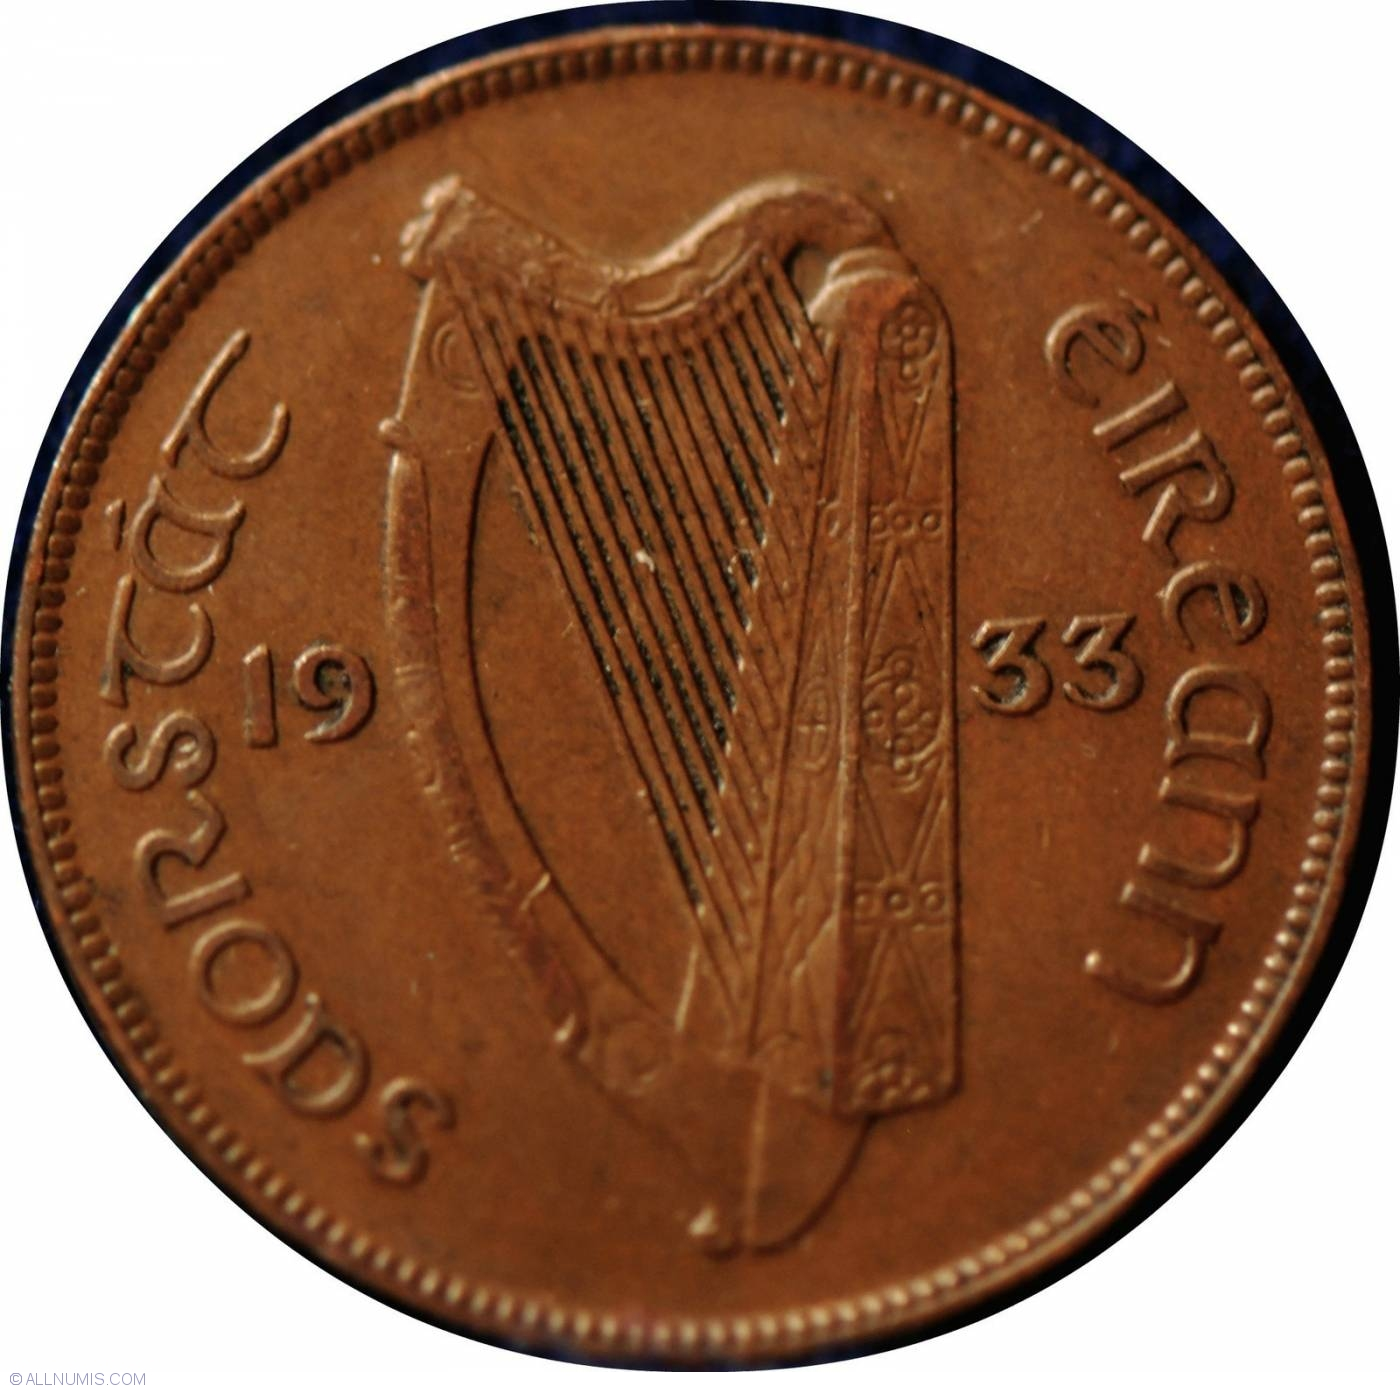 Free State Issue Scarcer Year Ireland Irish One Penny Coin Minted 1933